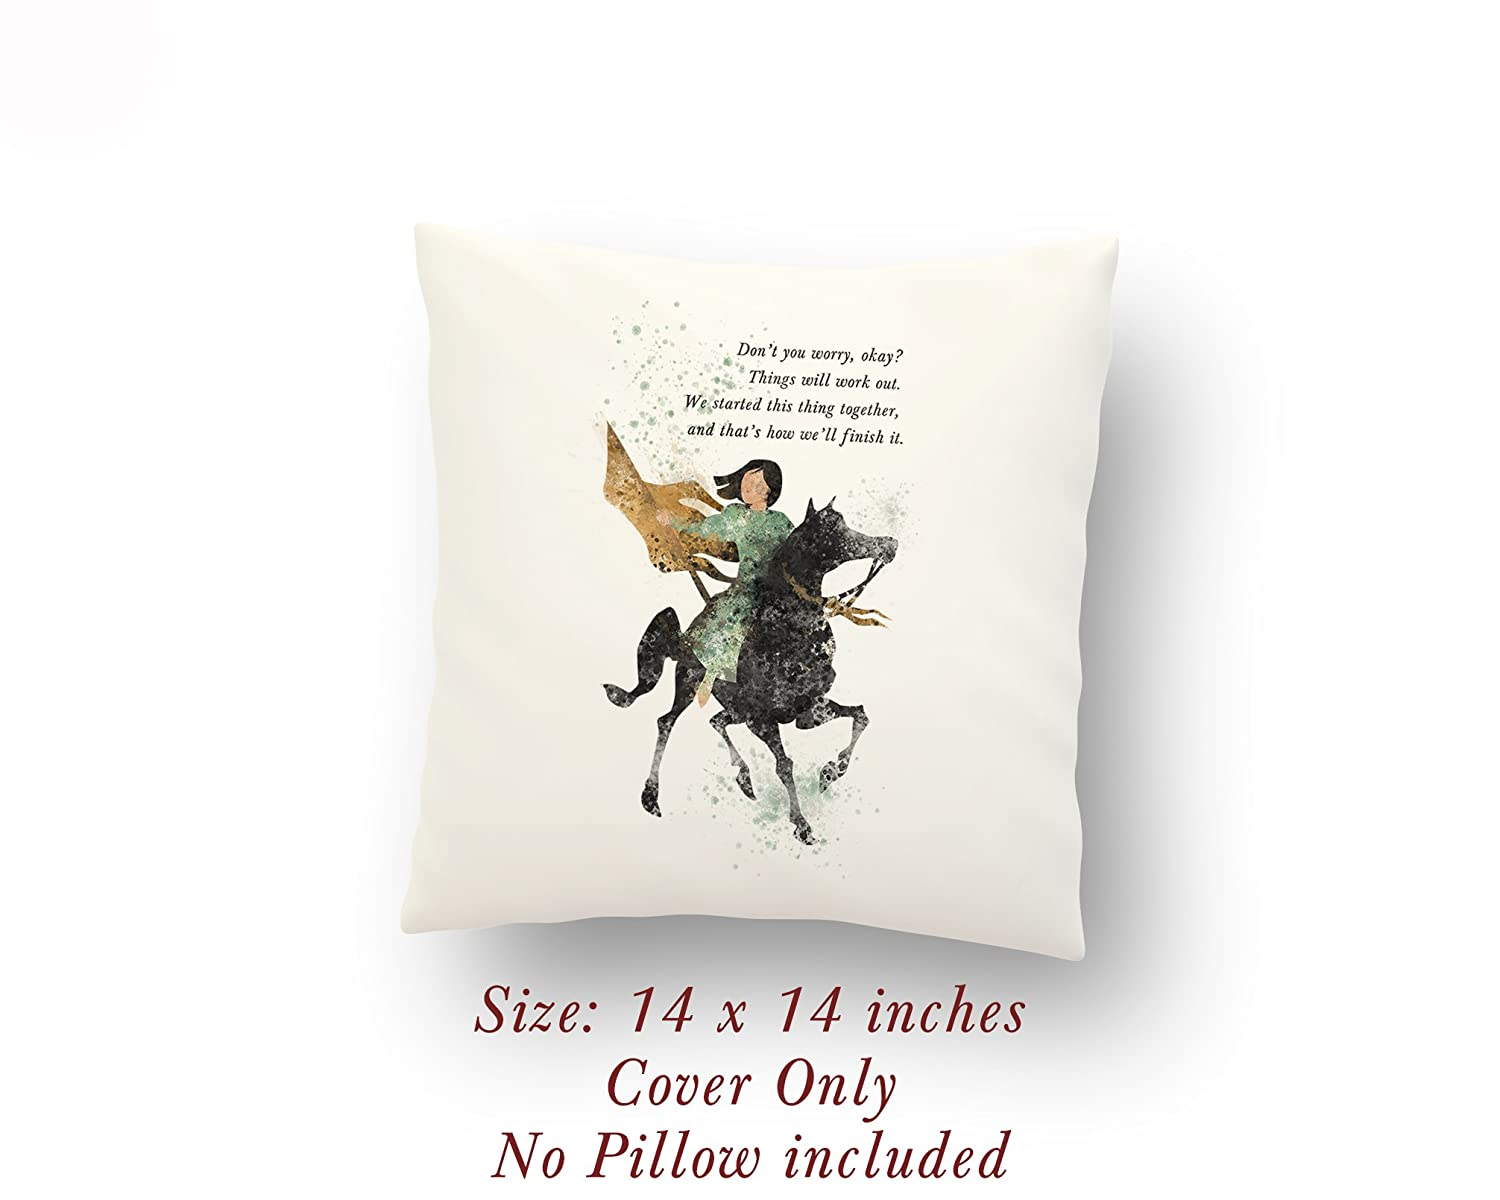 Mulan and Khan Quote 14 x 14 inches Pillow Cover